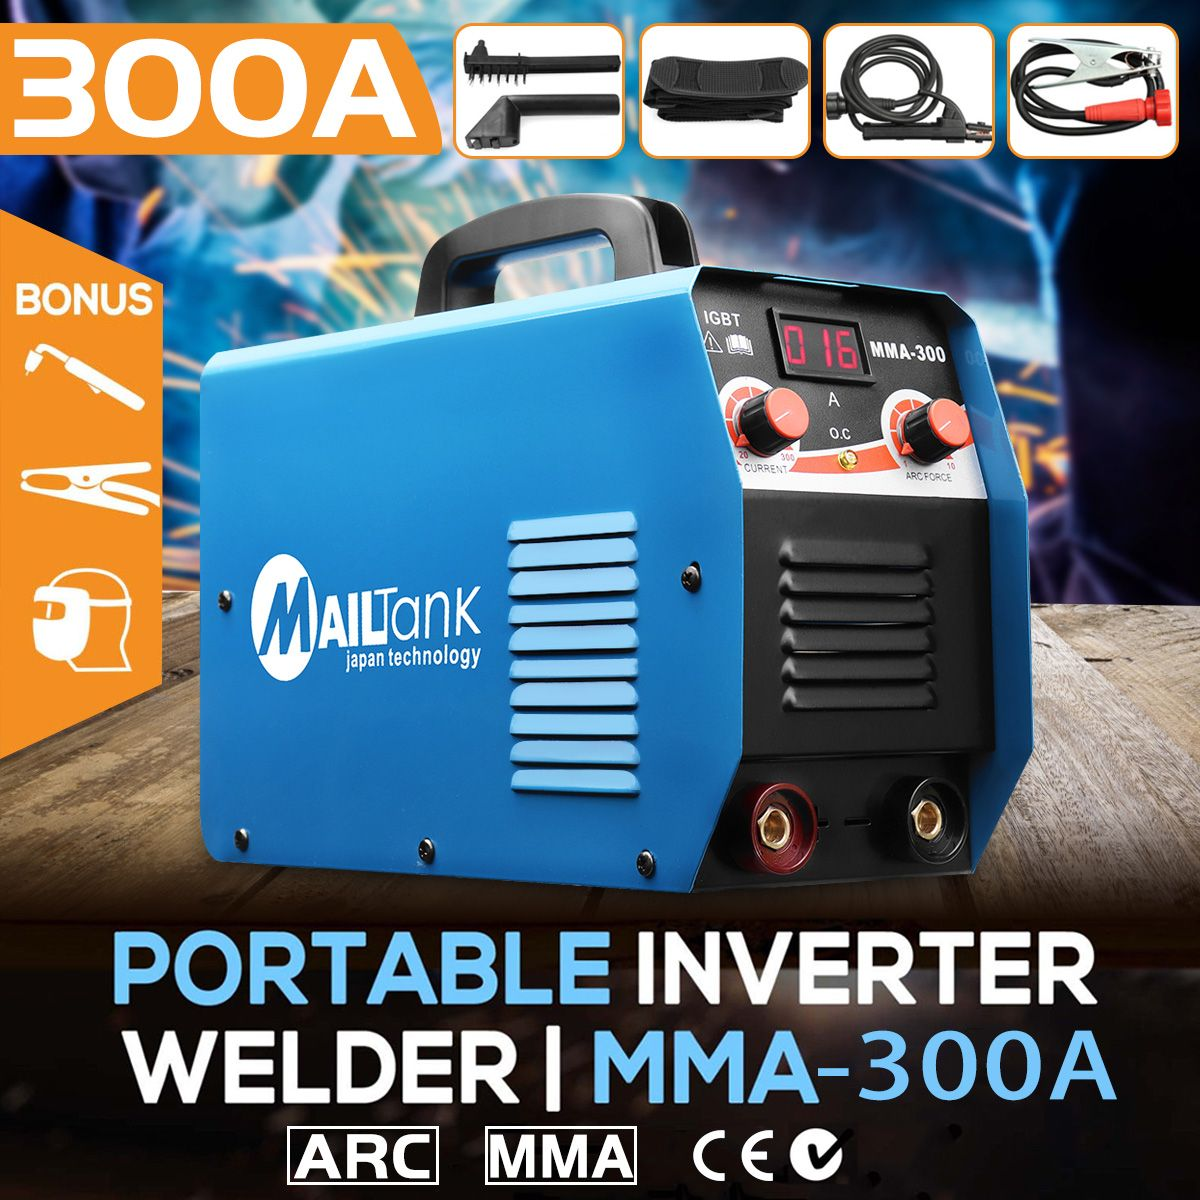 Portable MMA-300G Mini Welding DC Welding Machine 220V 25A-300A Semi-Automatic Inverter LCD Soldering Tool Welding Working